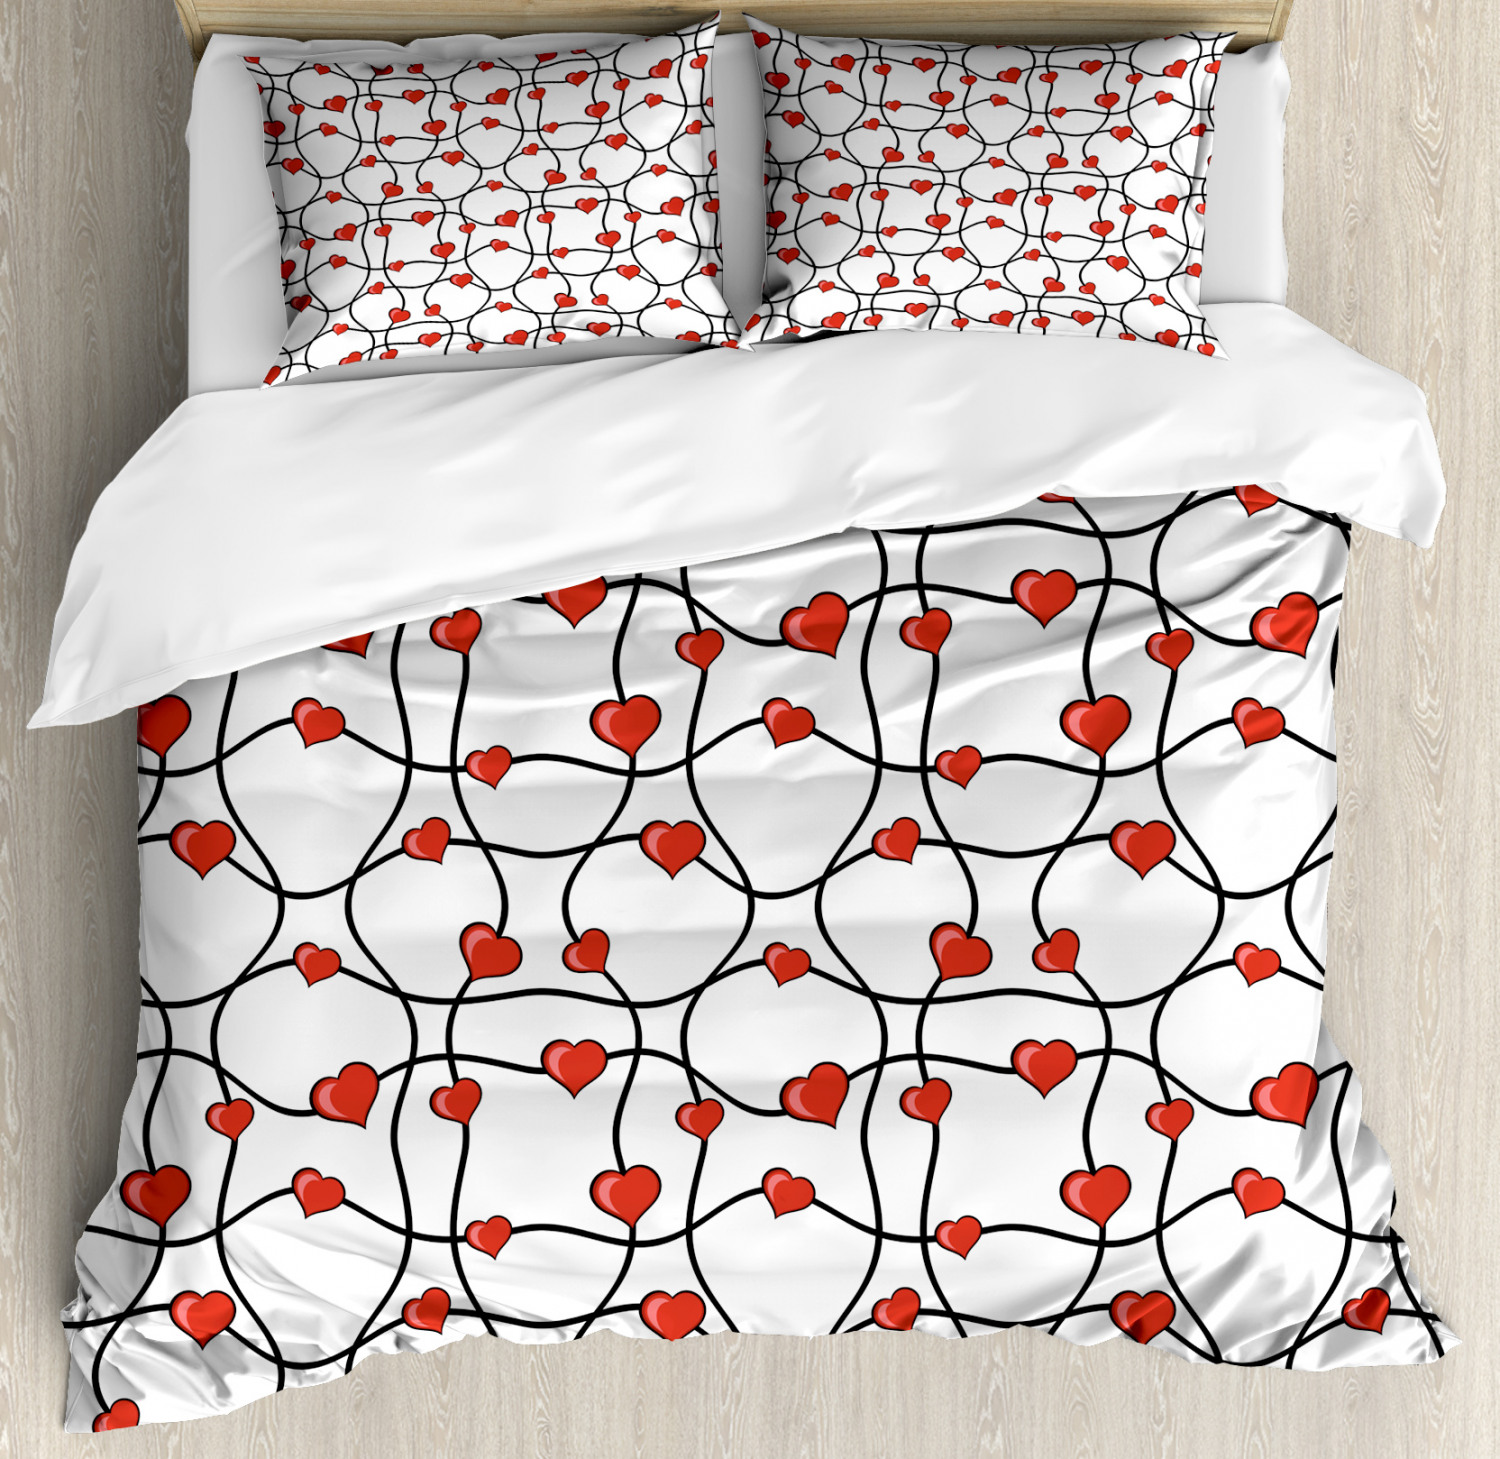 Valentines Duvet Cover Set with Pillow Shams Geometric Hearts Print